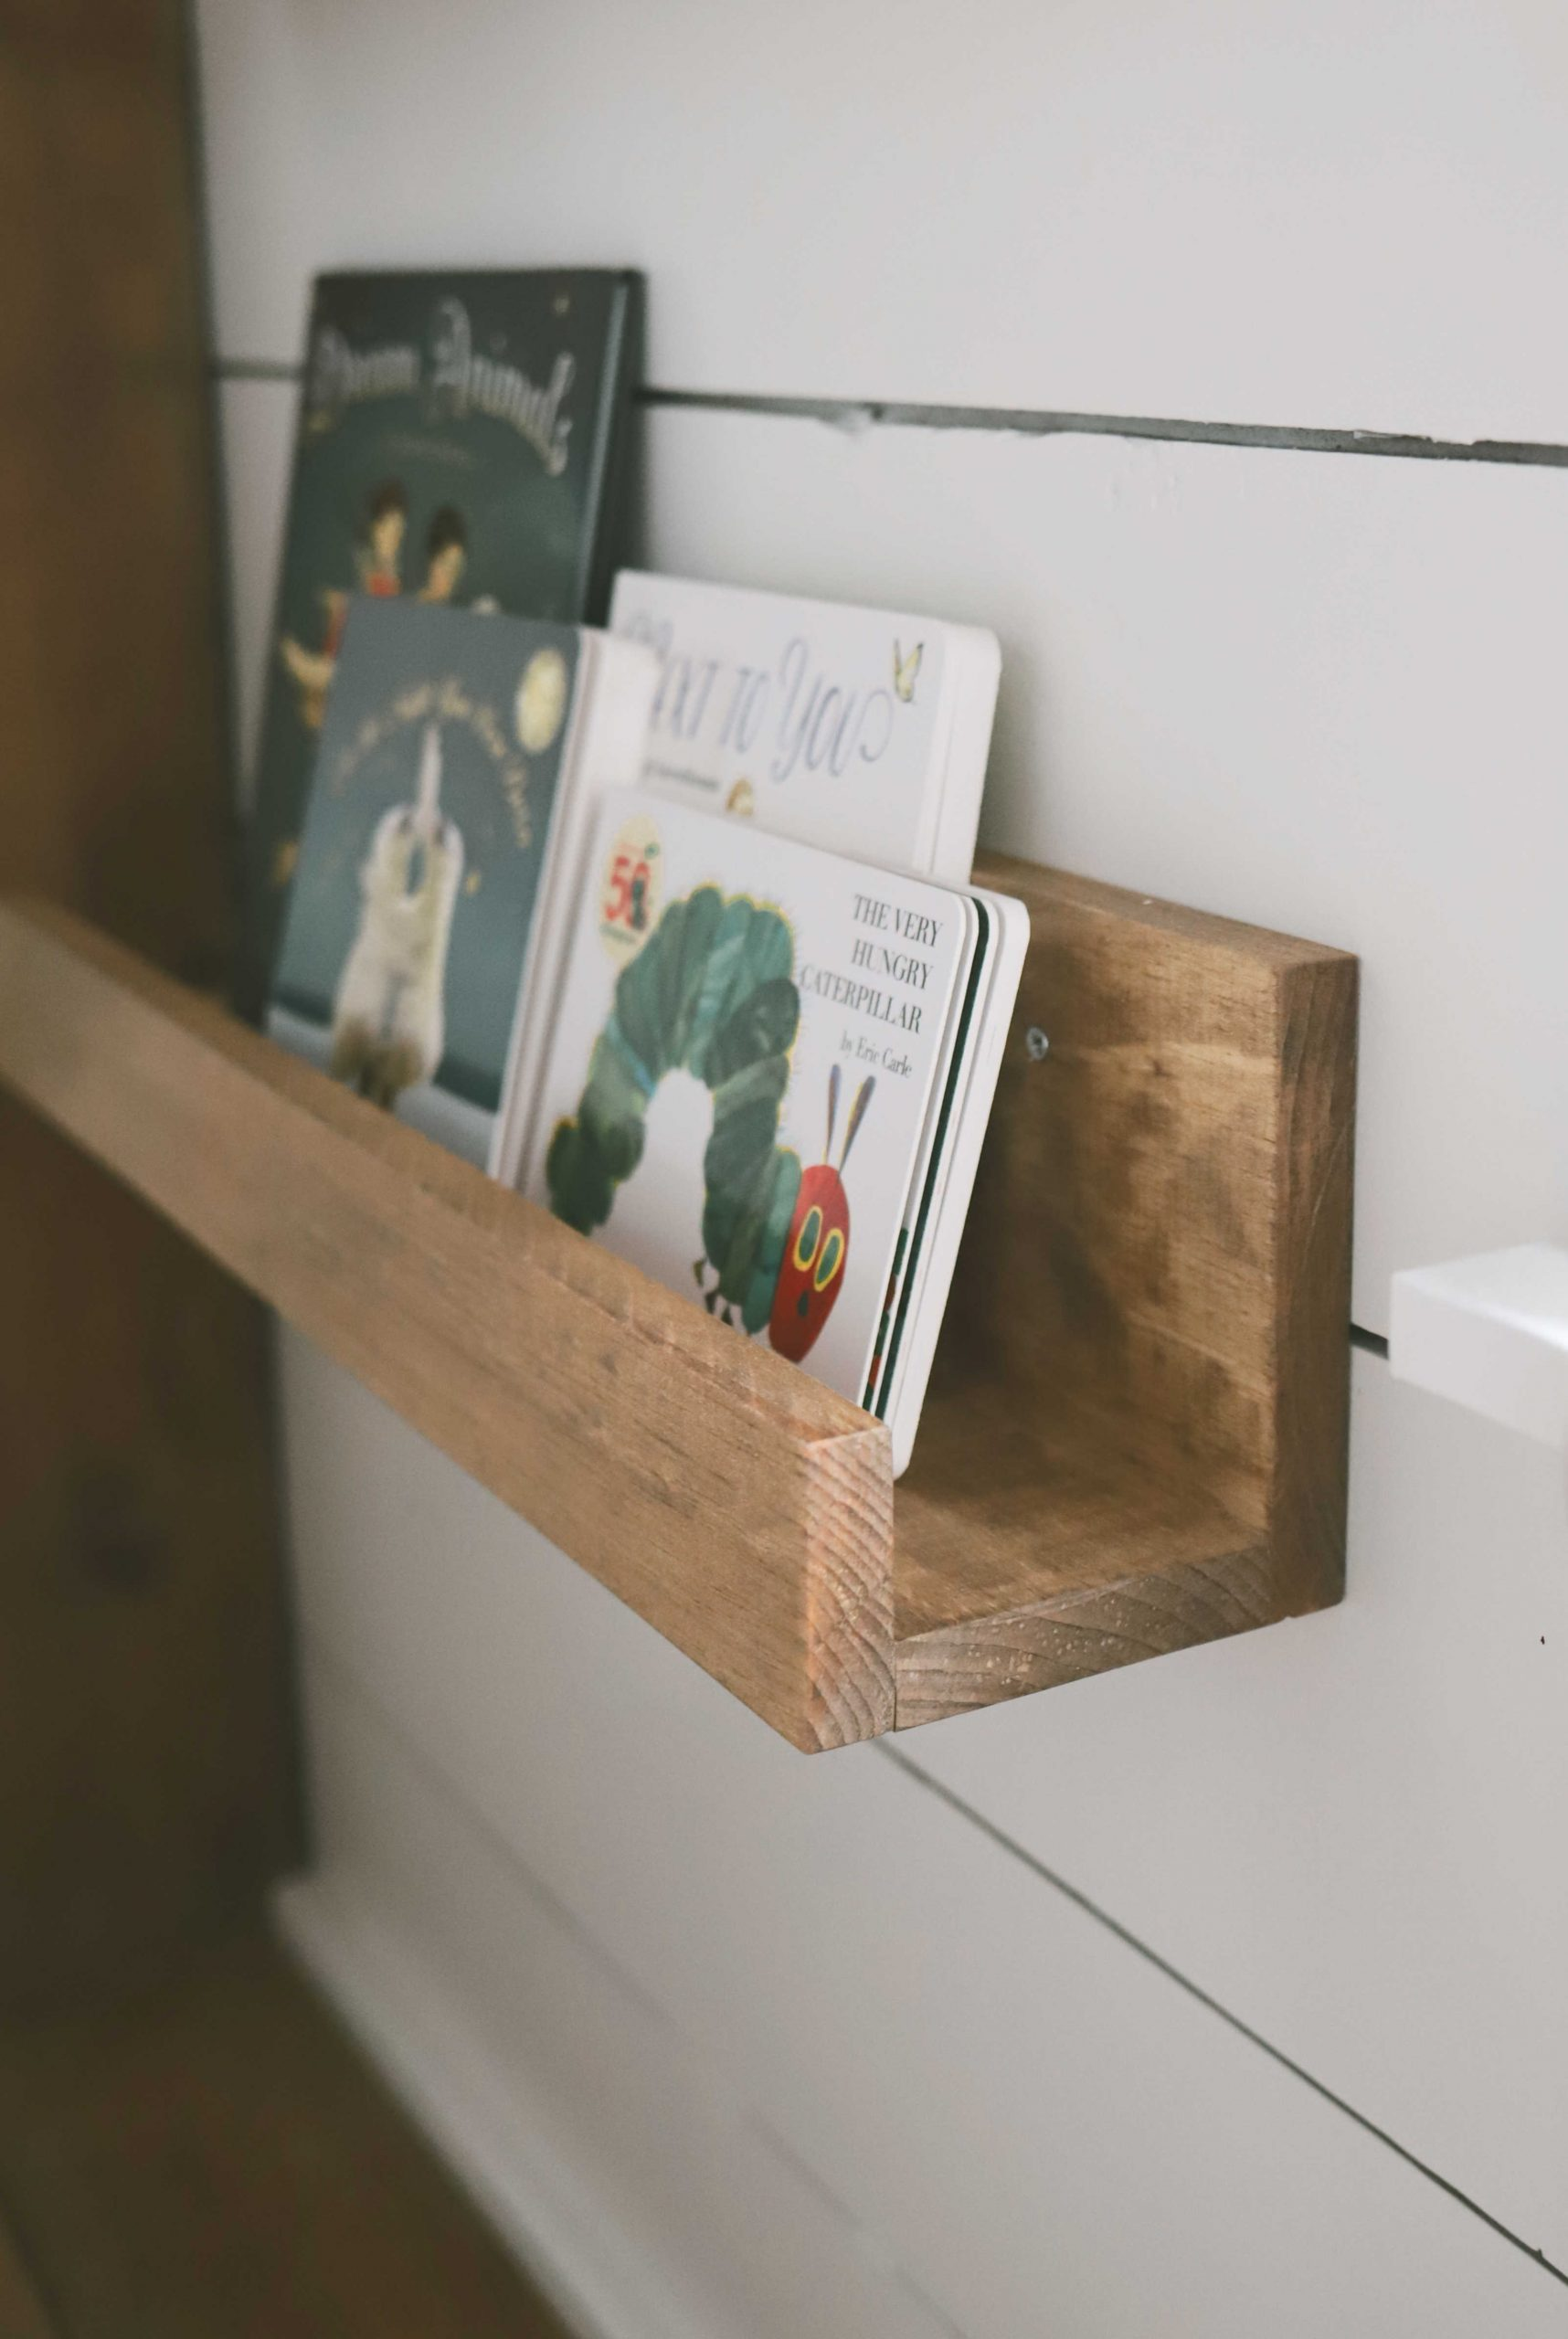 DIY Book Ledge - The Very Hungry Caterpillar